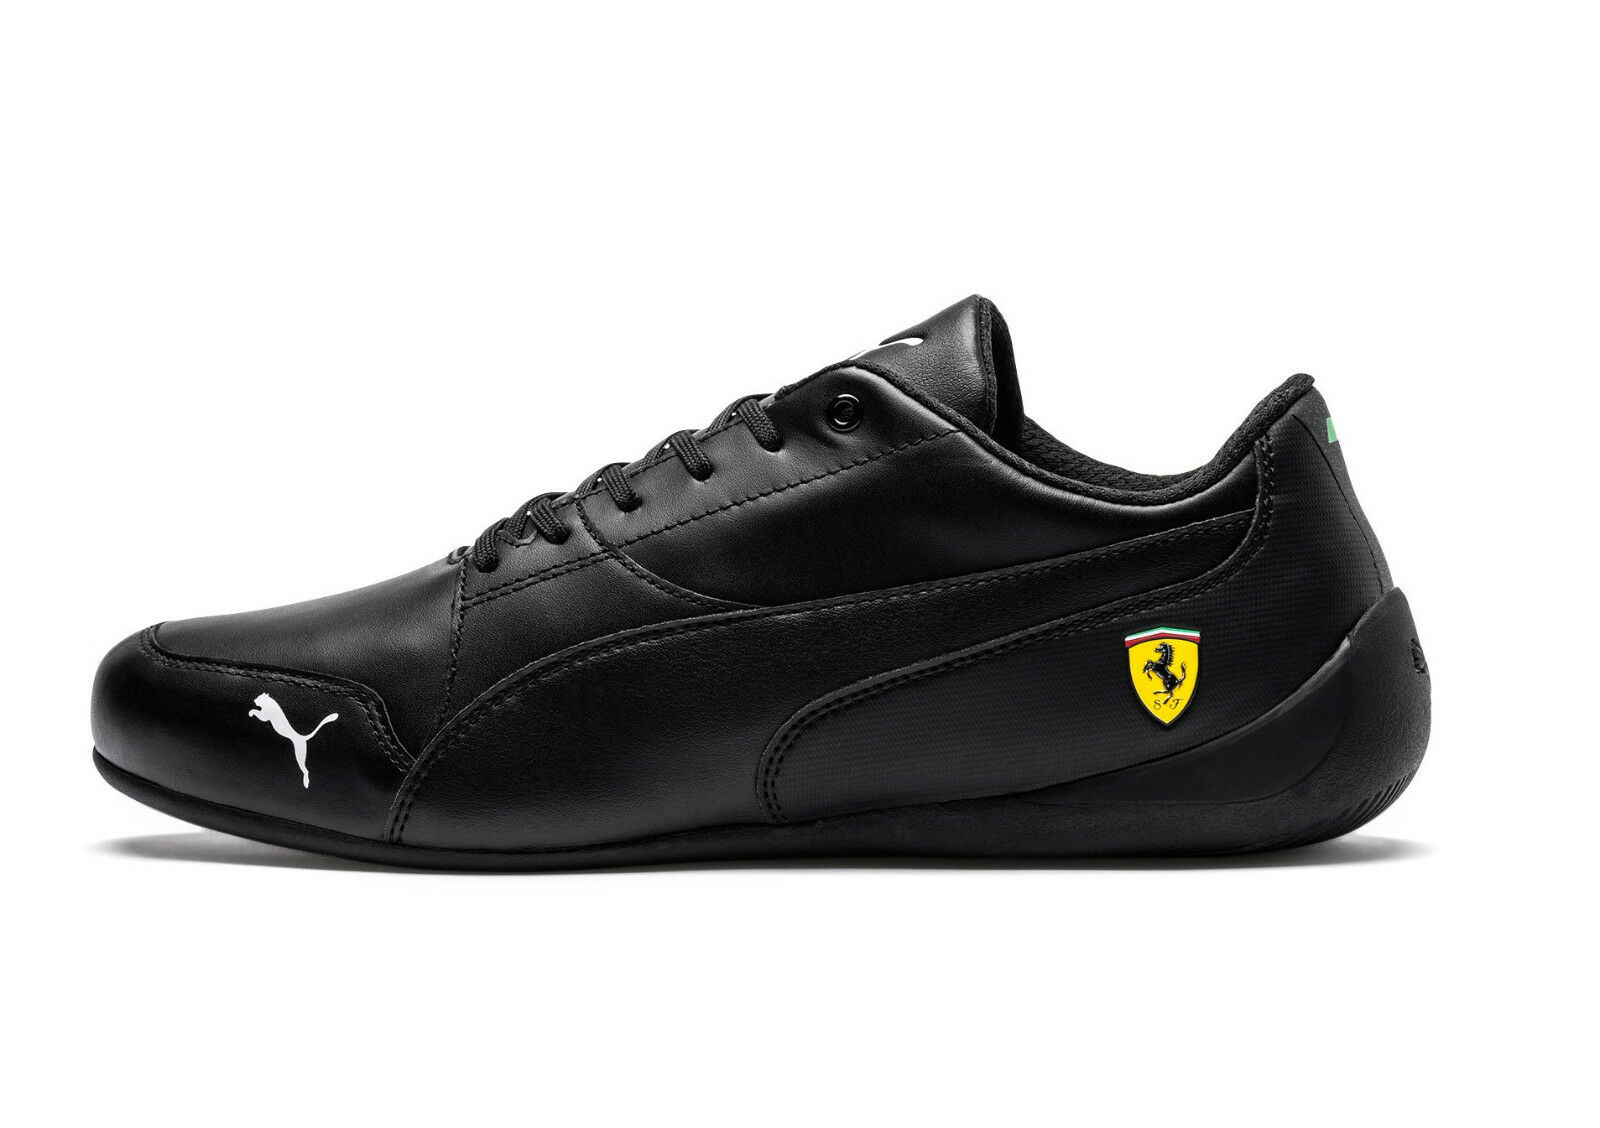 PUMA Ferrari Men's Motorsport SF Drift Cat 7 Black Trainers Sneakers shoes New